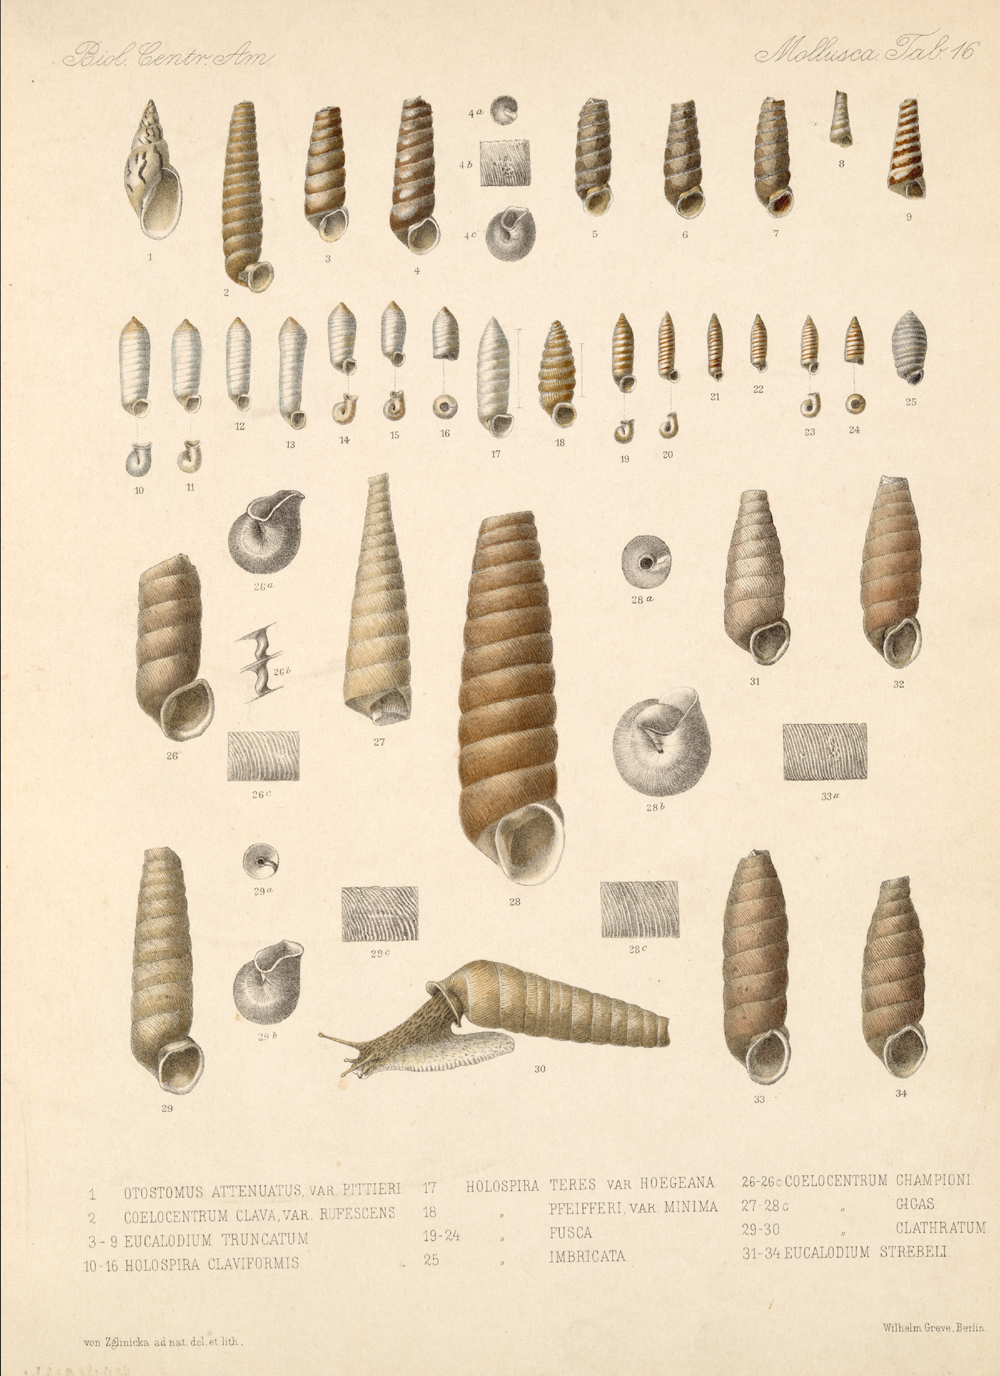 Shells and Mollusks,  Image number:bca_06_00_00_741